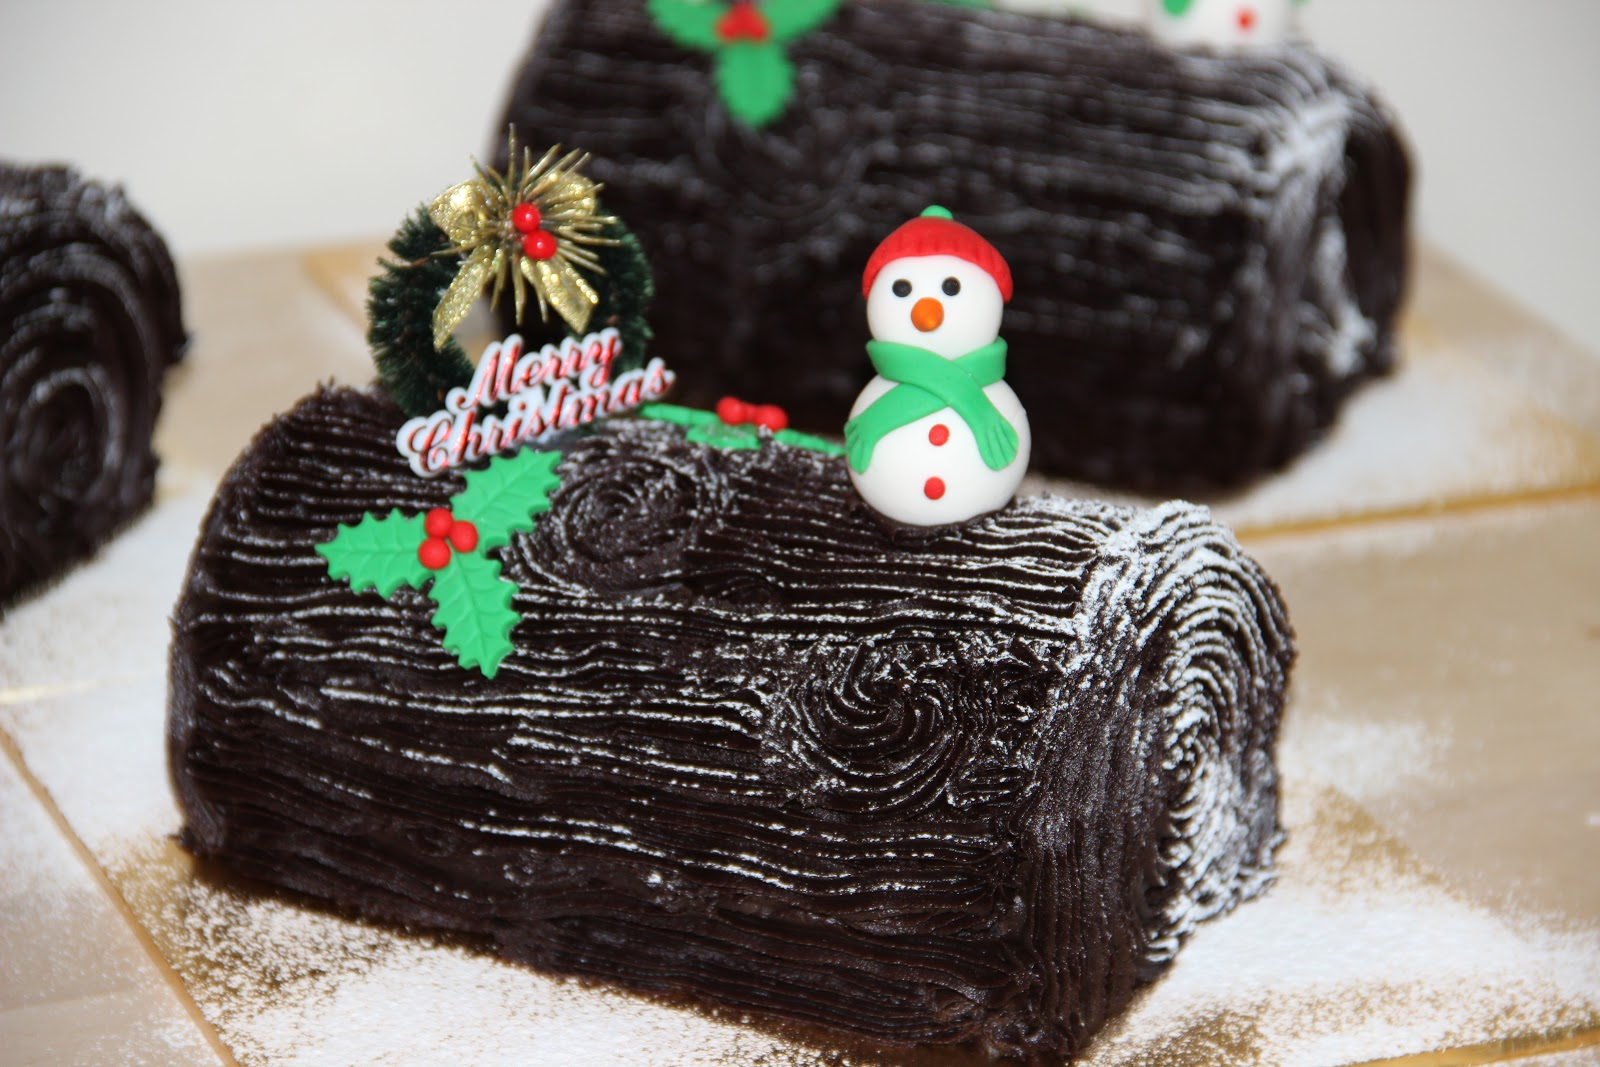 How to make a christmas yule log decoration - Chocolate Yule Log Cake